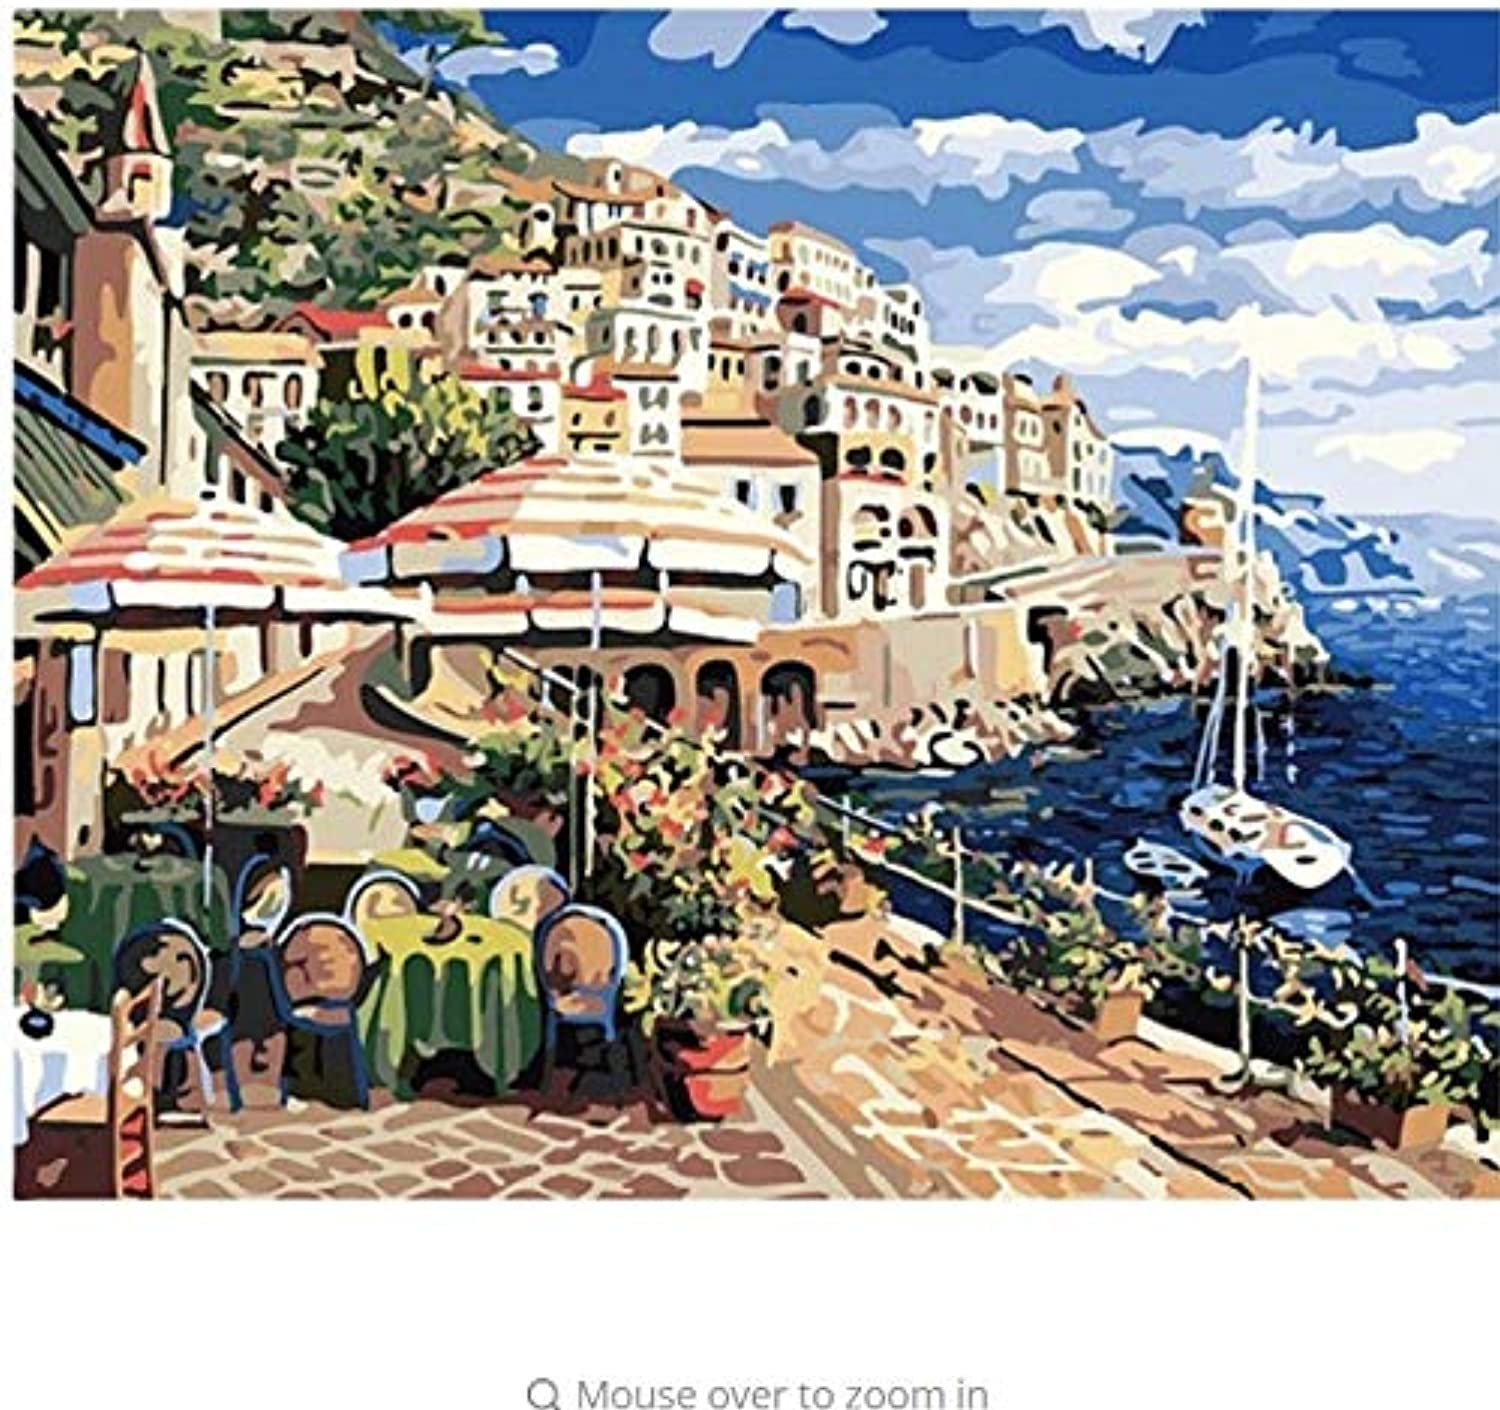 LIWEIXKY Modular Pictures DIY Digital Oil Painting By Numbers On The Canvas Seaside City Of The Paintings On The Wall  Framed  50x60cm